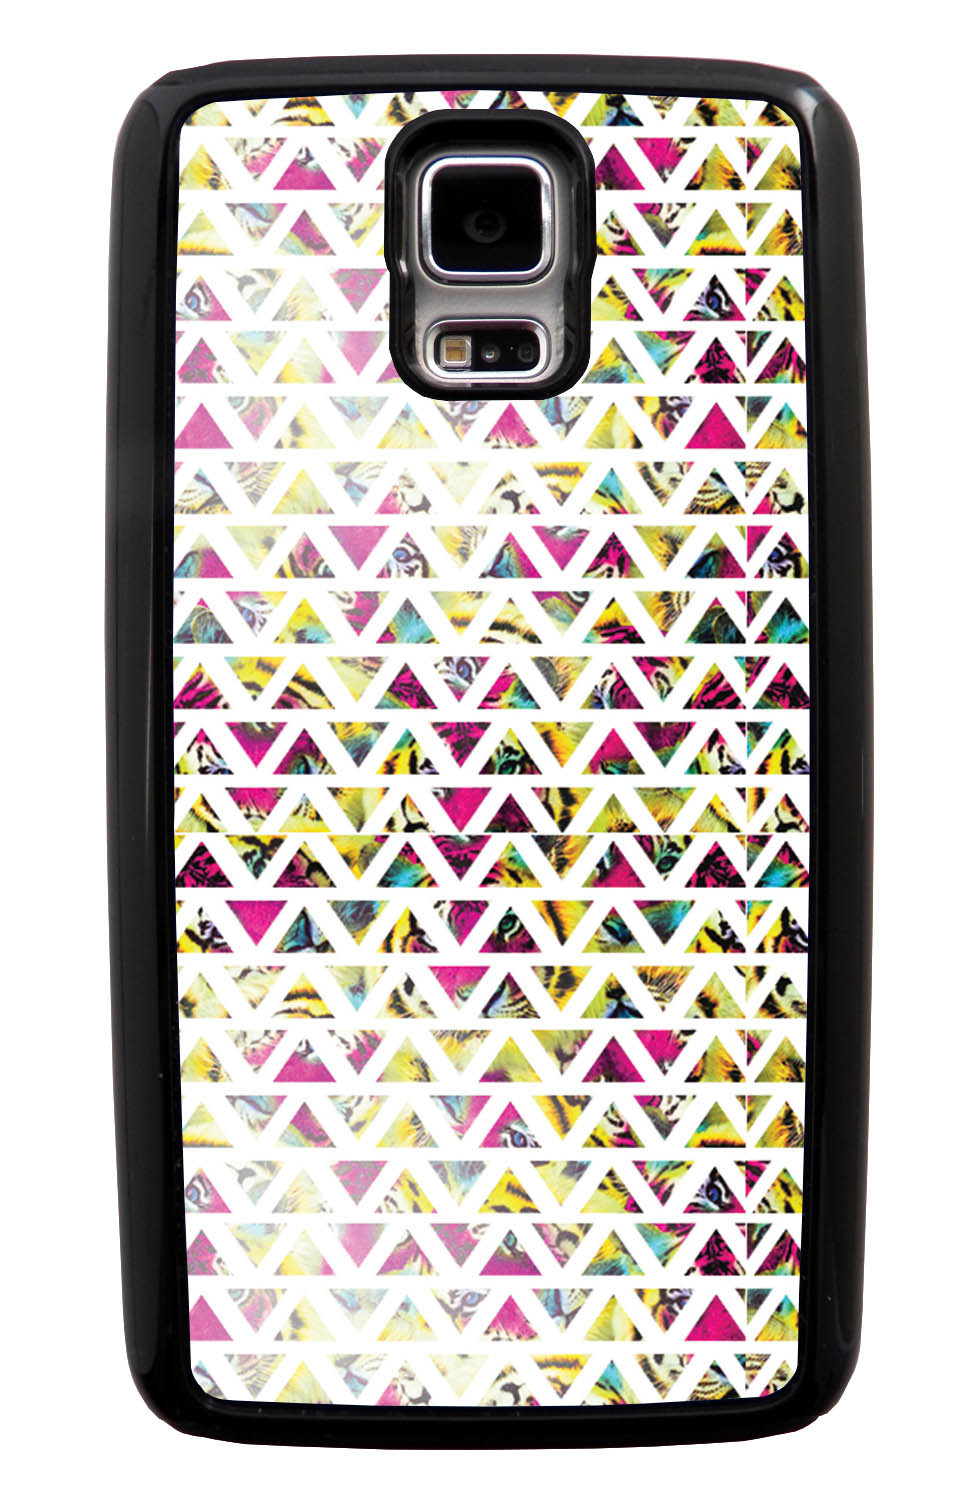 Samsung Galaxy S5 / SV Aztec Case - Triangles On Pink Yellow Tiger - Geometric - Black Tough Hybrid Case